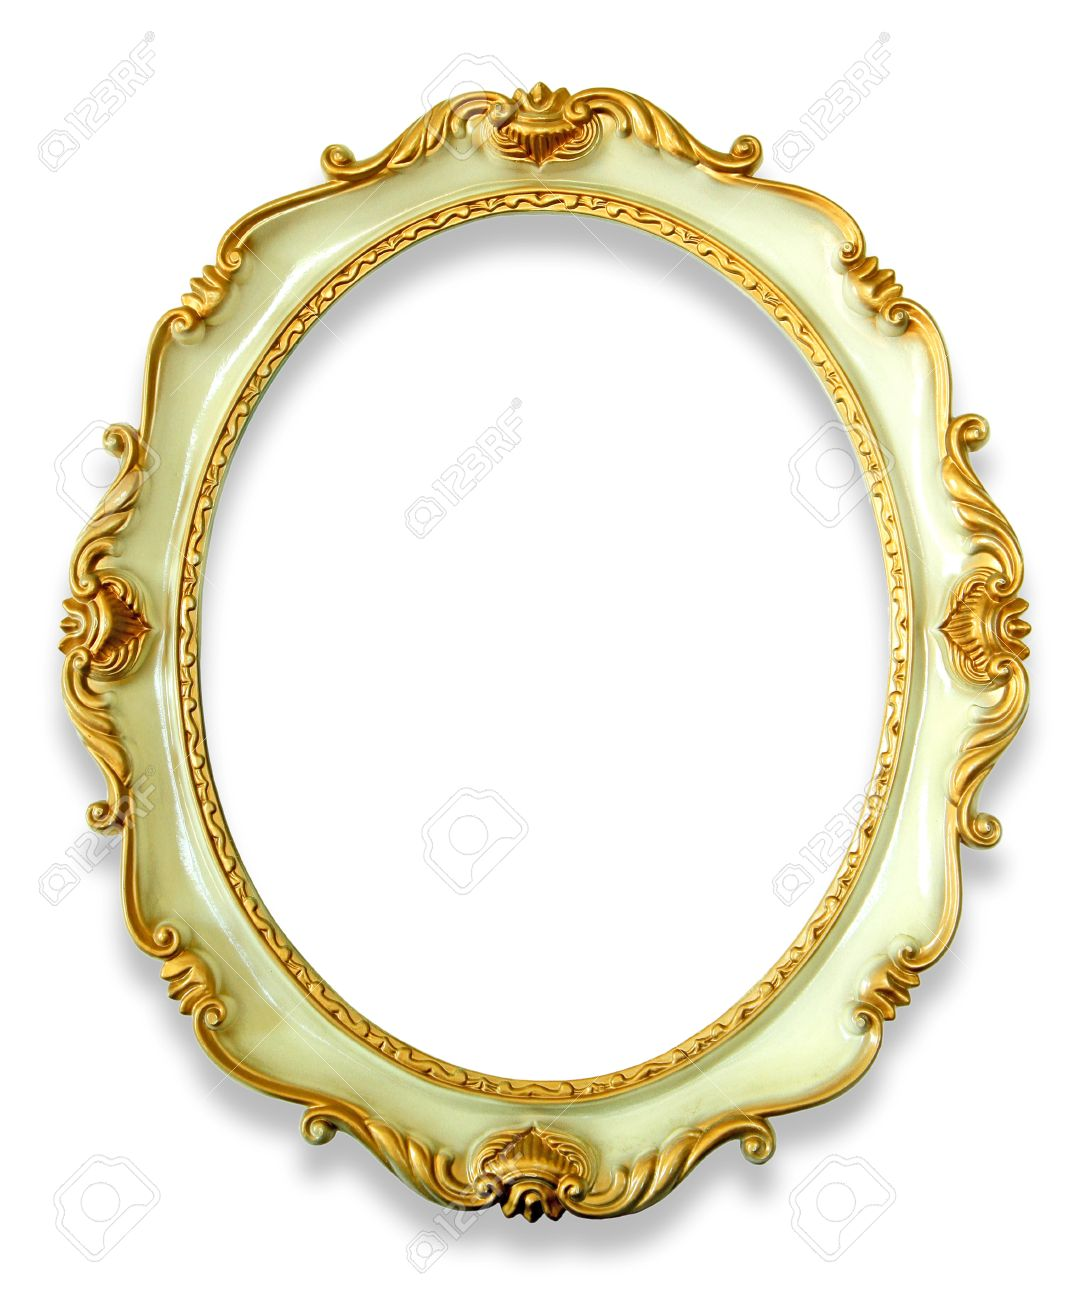 Vintage Oval Frame Isolated On White Background Stock Photo, Picture ...